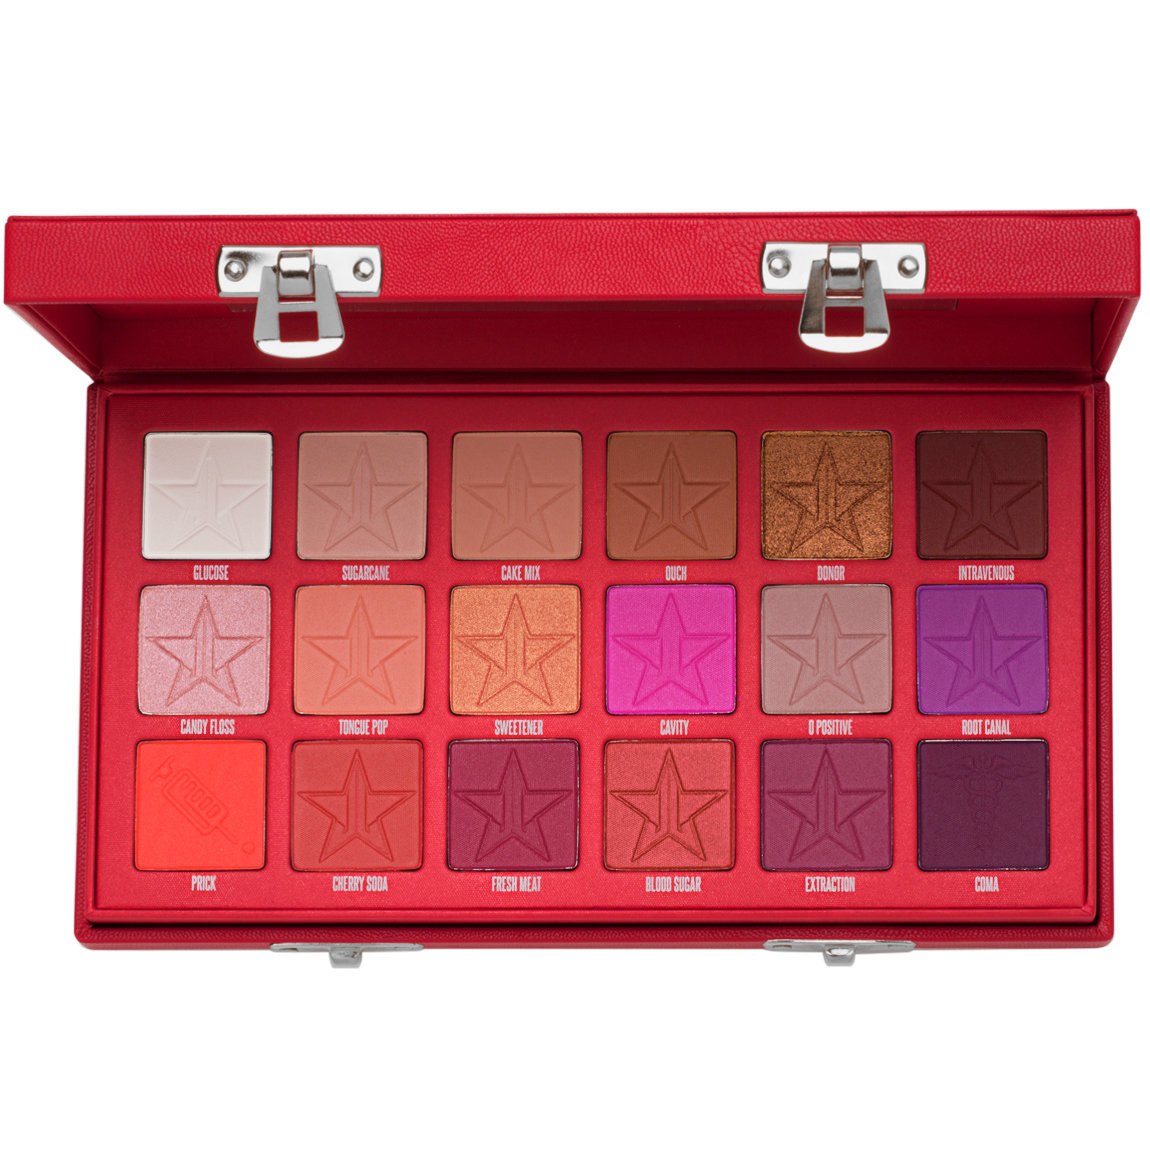 Jeffree Star Cosmetics Blood Sugar Eyeshadow Palette product smear.